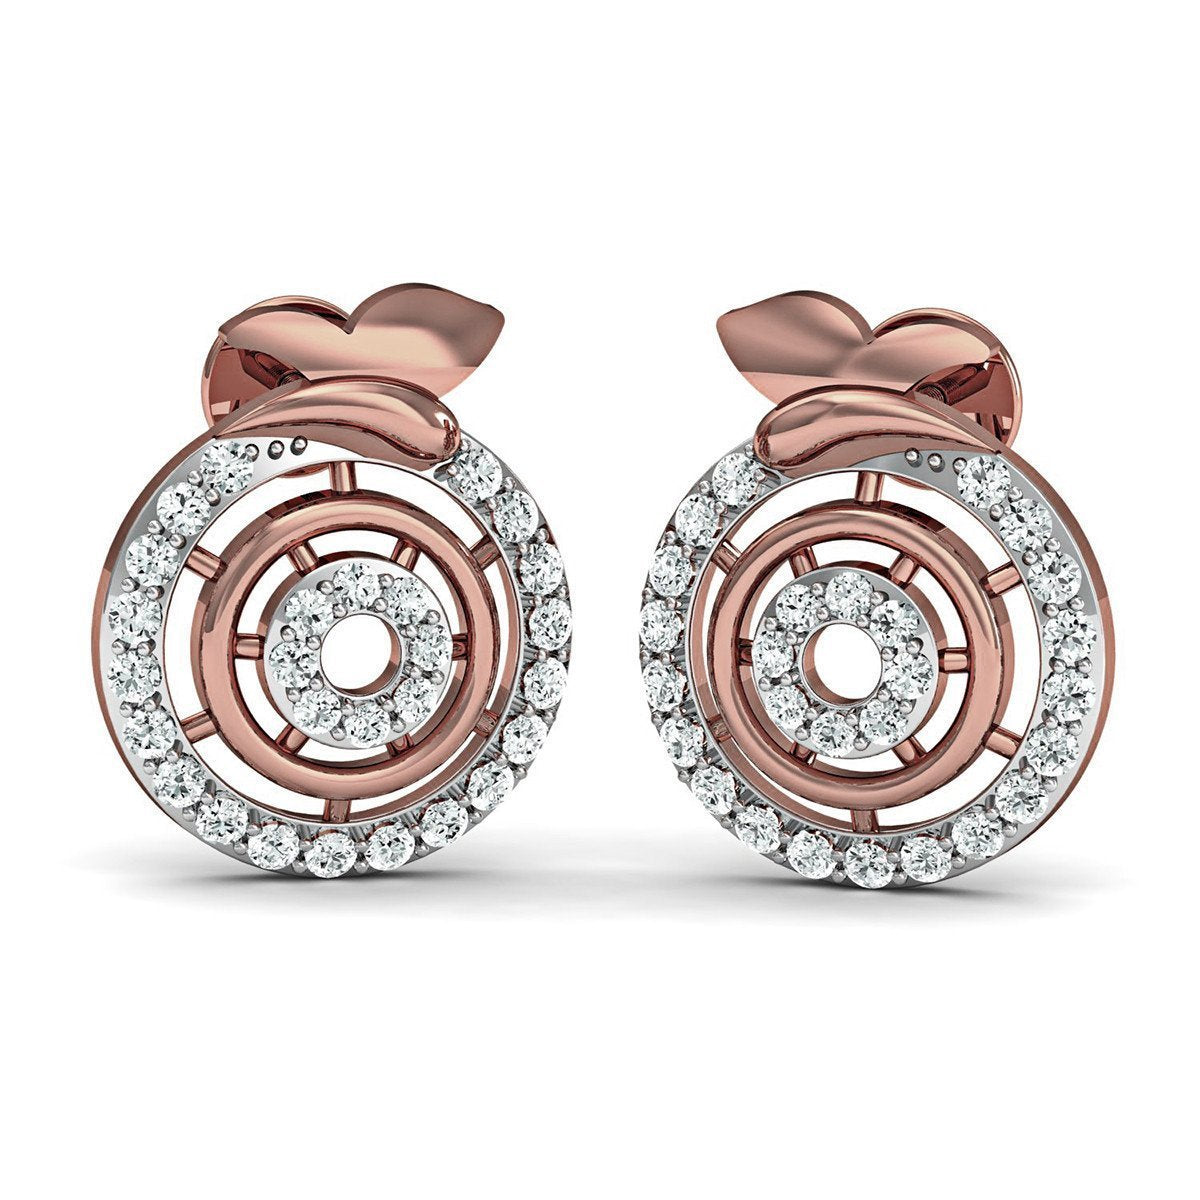 Hand-carved 14kt Rose Gold Pave Earrings with Hand-set Premium Quality Diamonds